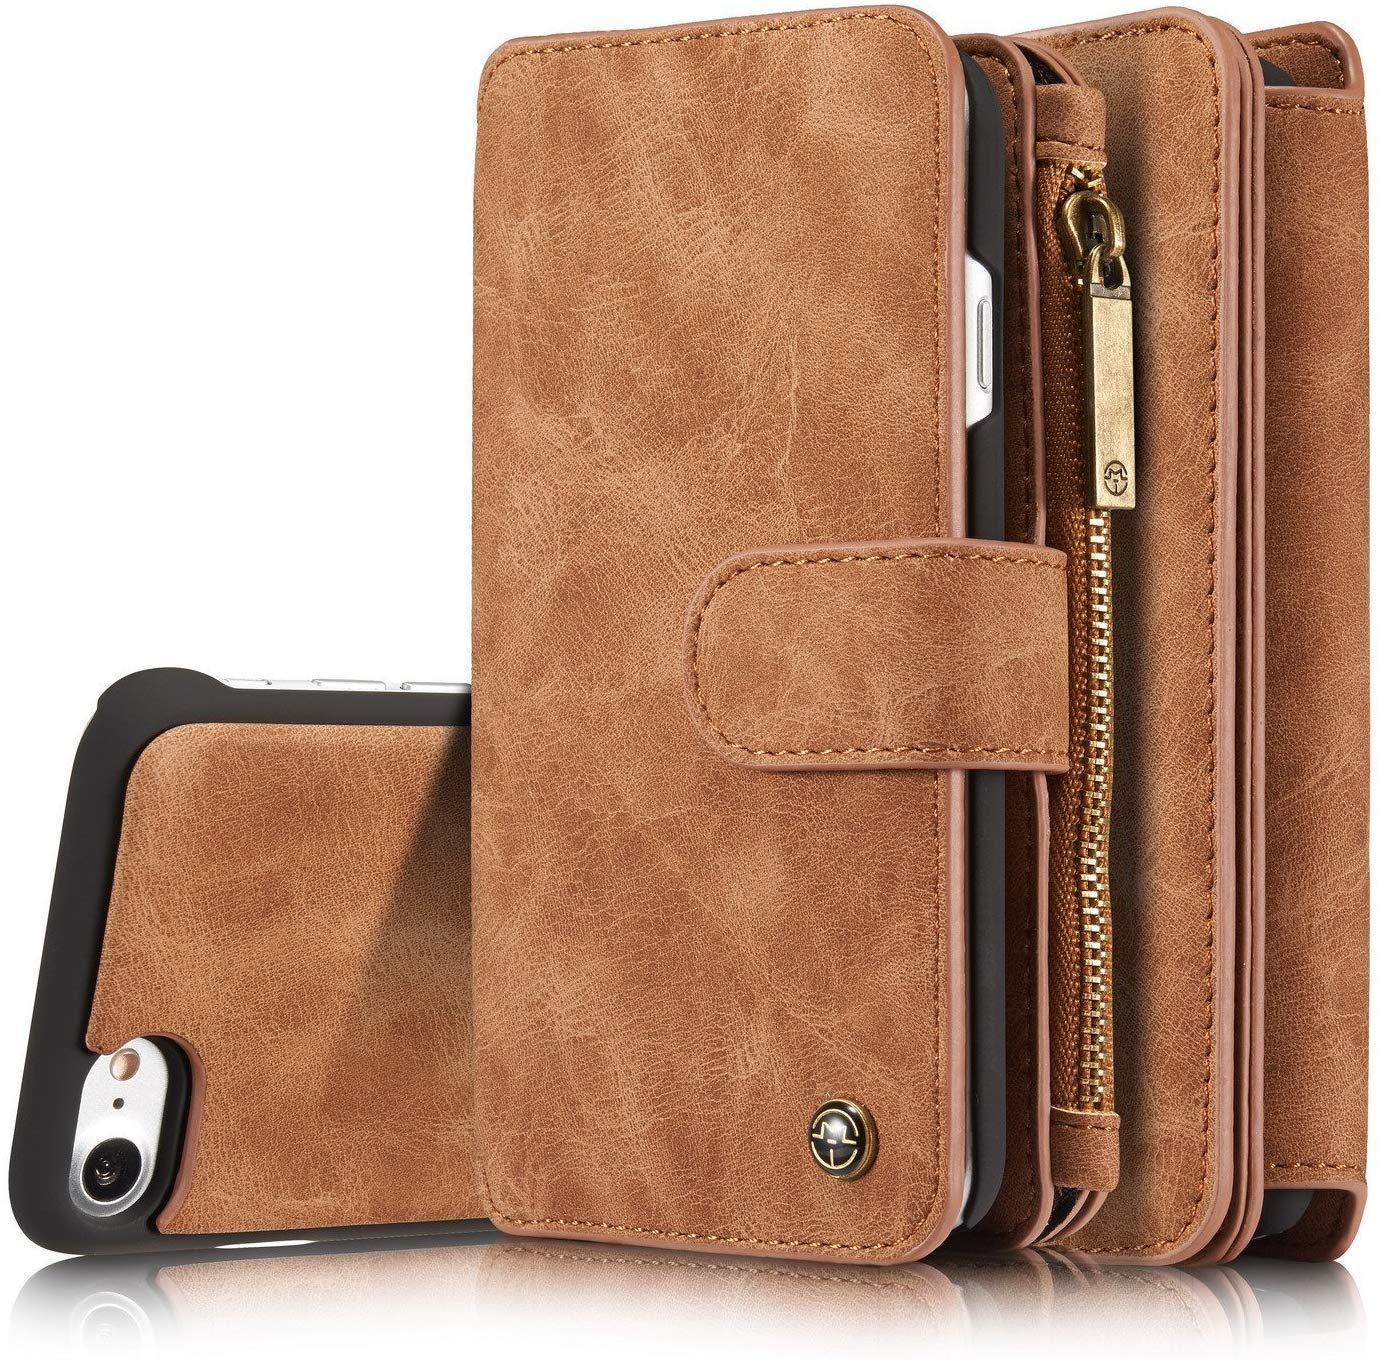 Jennyfly 2019 6.1 inch iPhone 11R Case, Girls Luxury 2-in-1 Protective PU Leather Wallet Case Protective Cover with Card Slots for 2019 iPhone 11R /XIR 6.1 inch - Brown by Jennyfly